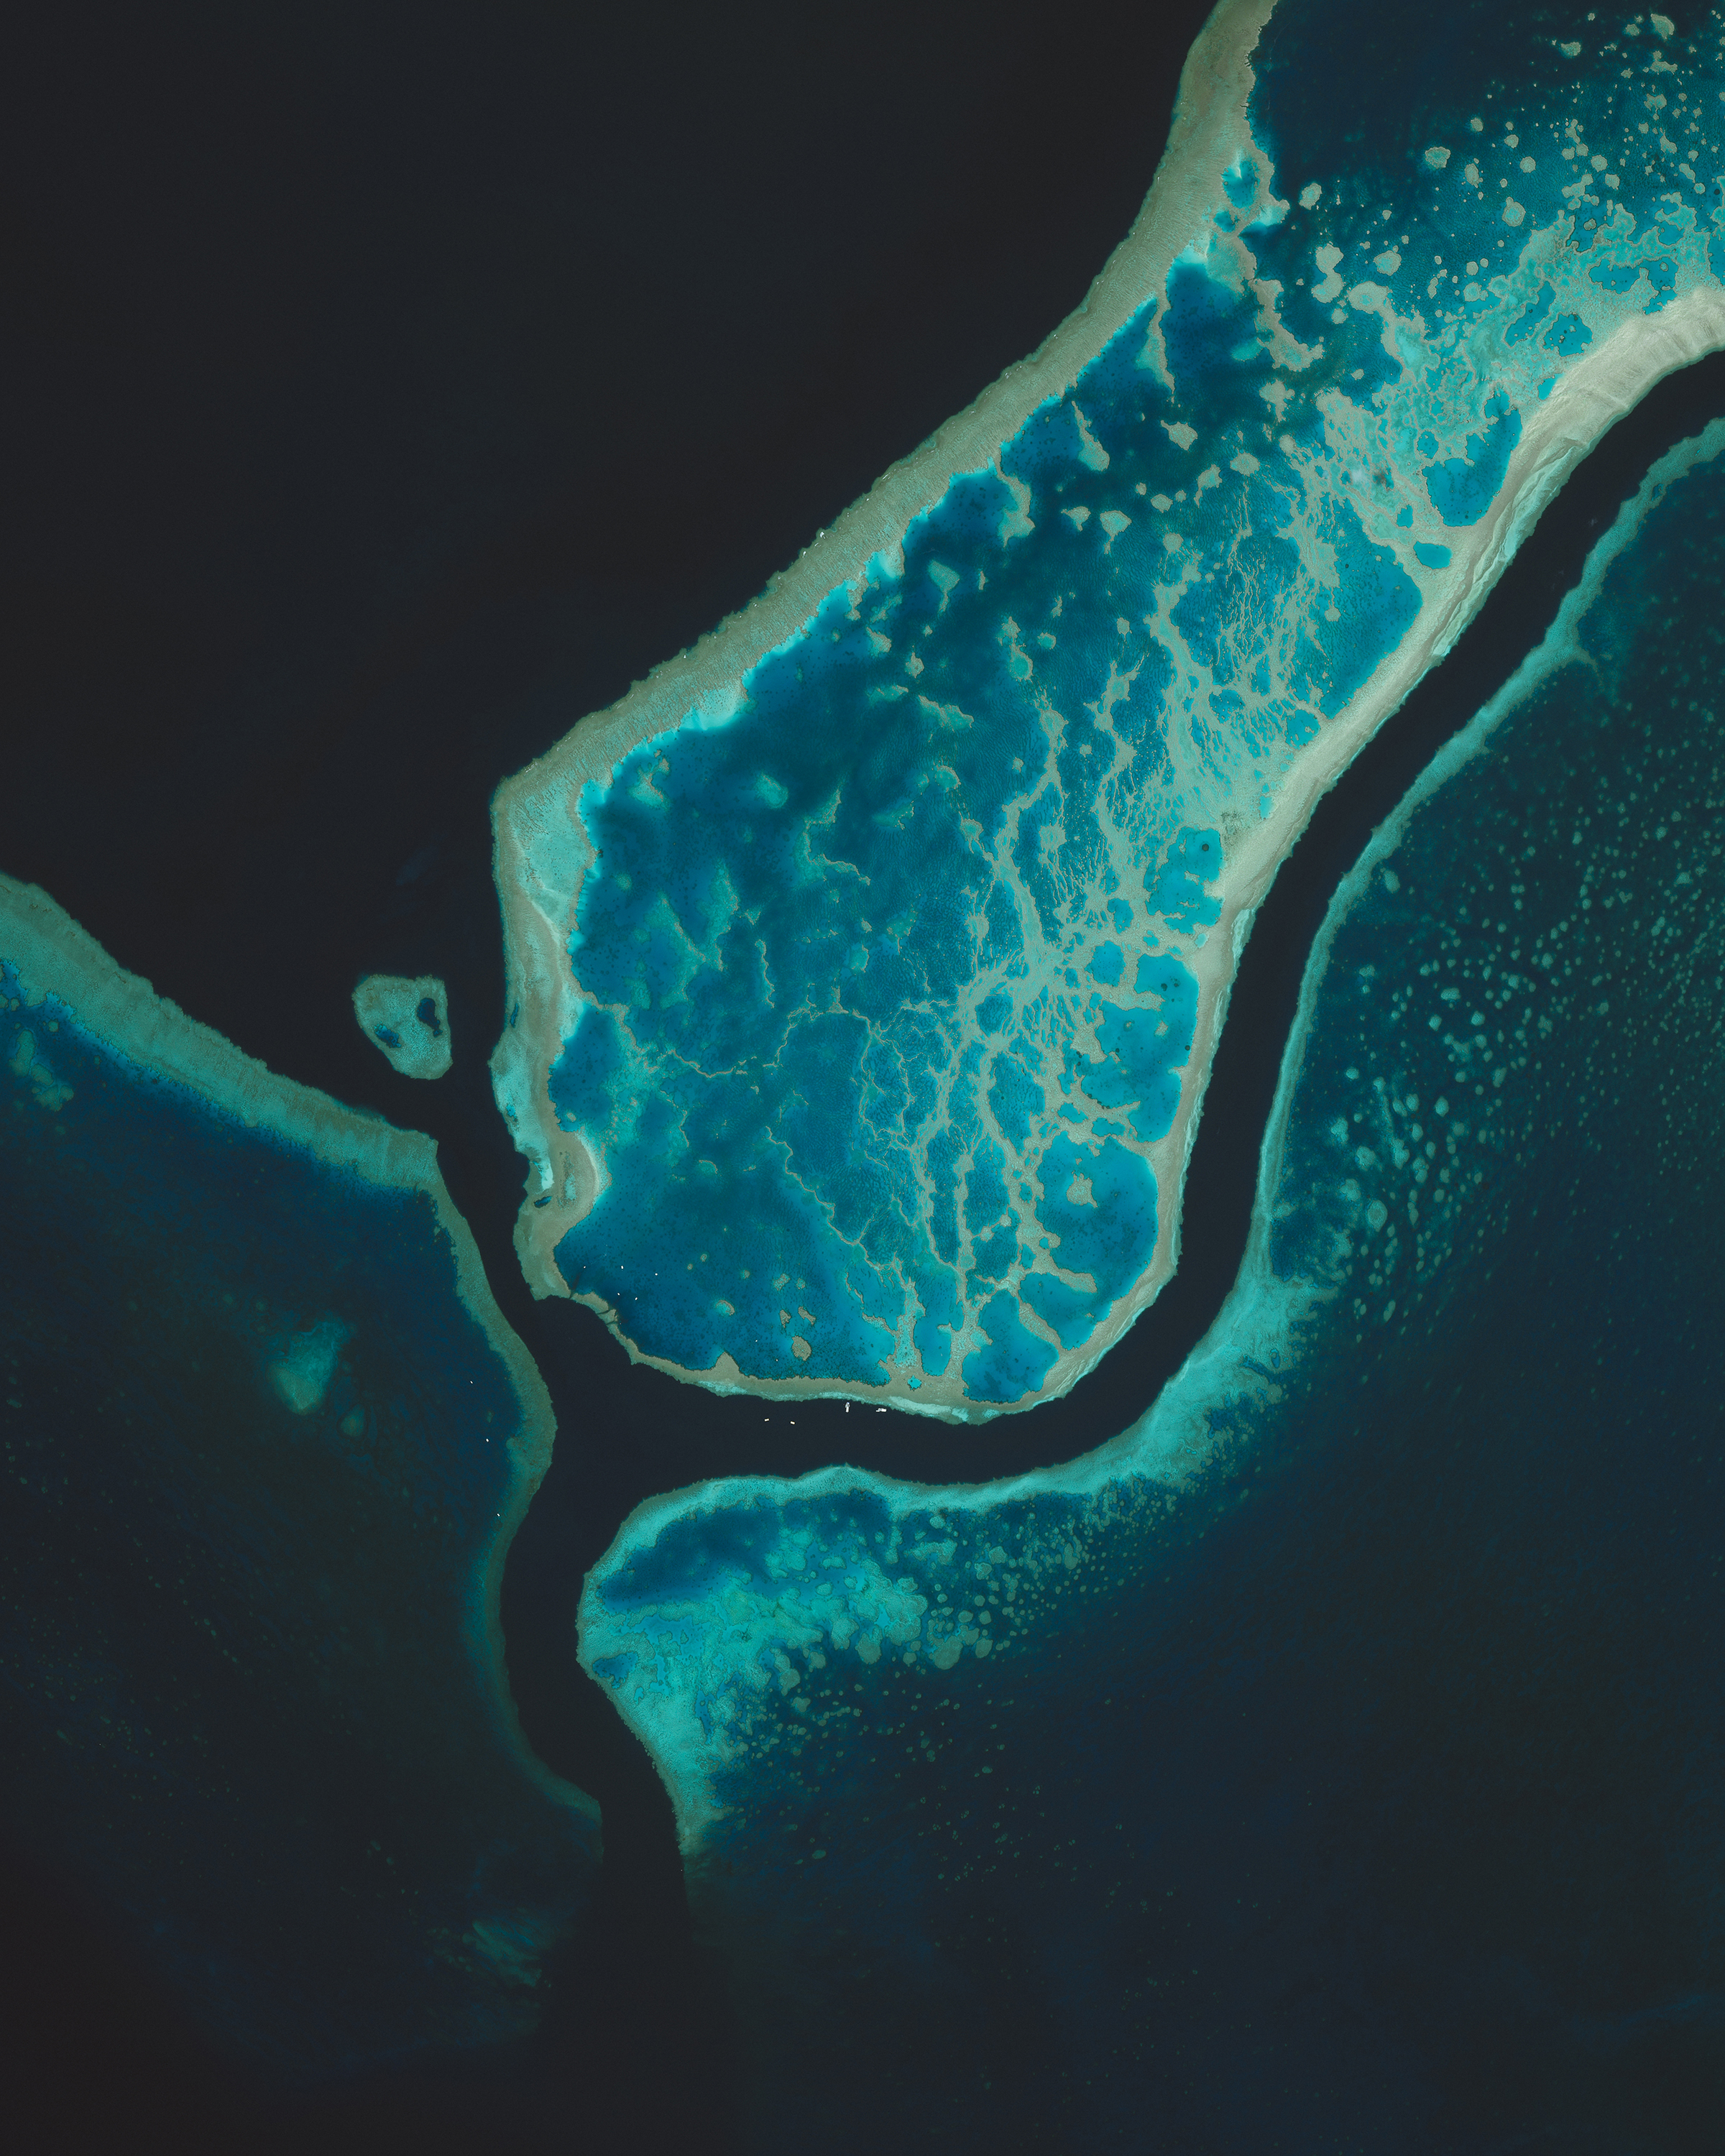 "This Overview captures a small segment of the Great Barrier Reef, located off the coast of Queensland, in northeastern Australia. Composed of more than 2,900 individual reefs and 900 islands, the reef system is Earth's largest structure made up of living things. The Great Barrier Reef stretches for more than 1,400 miles (2,300 km) and covers an area of roughly 130,000 square miles (344,400 sq. km).  18°17'10.0""S, 147°42'00.0""E  Source imagery: DigitalGlobe"